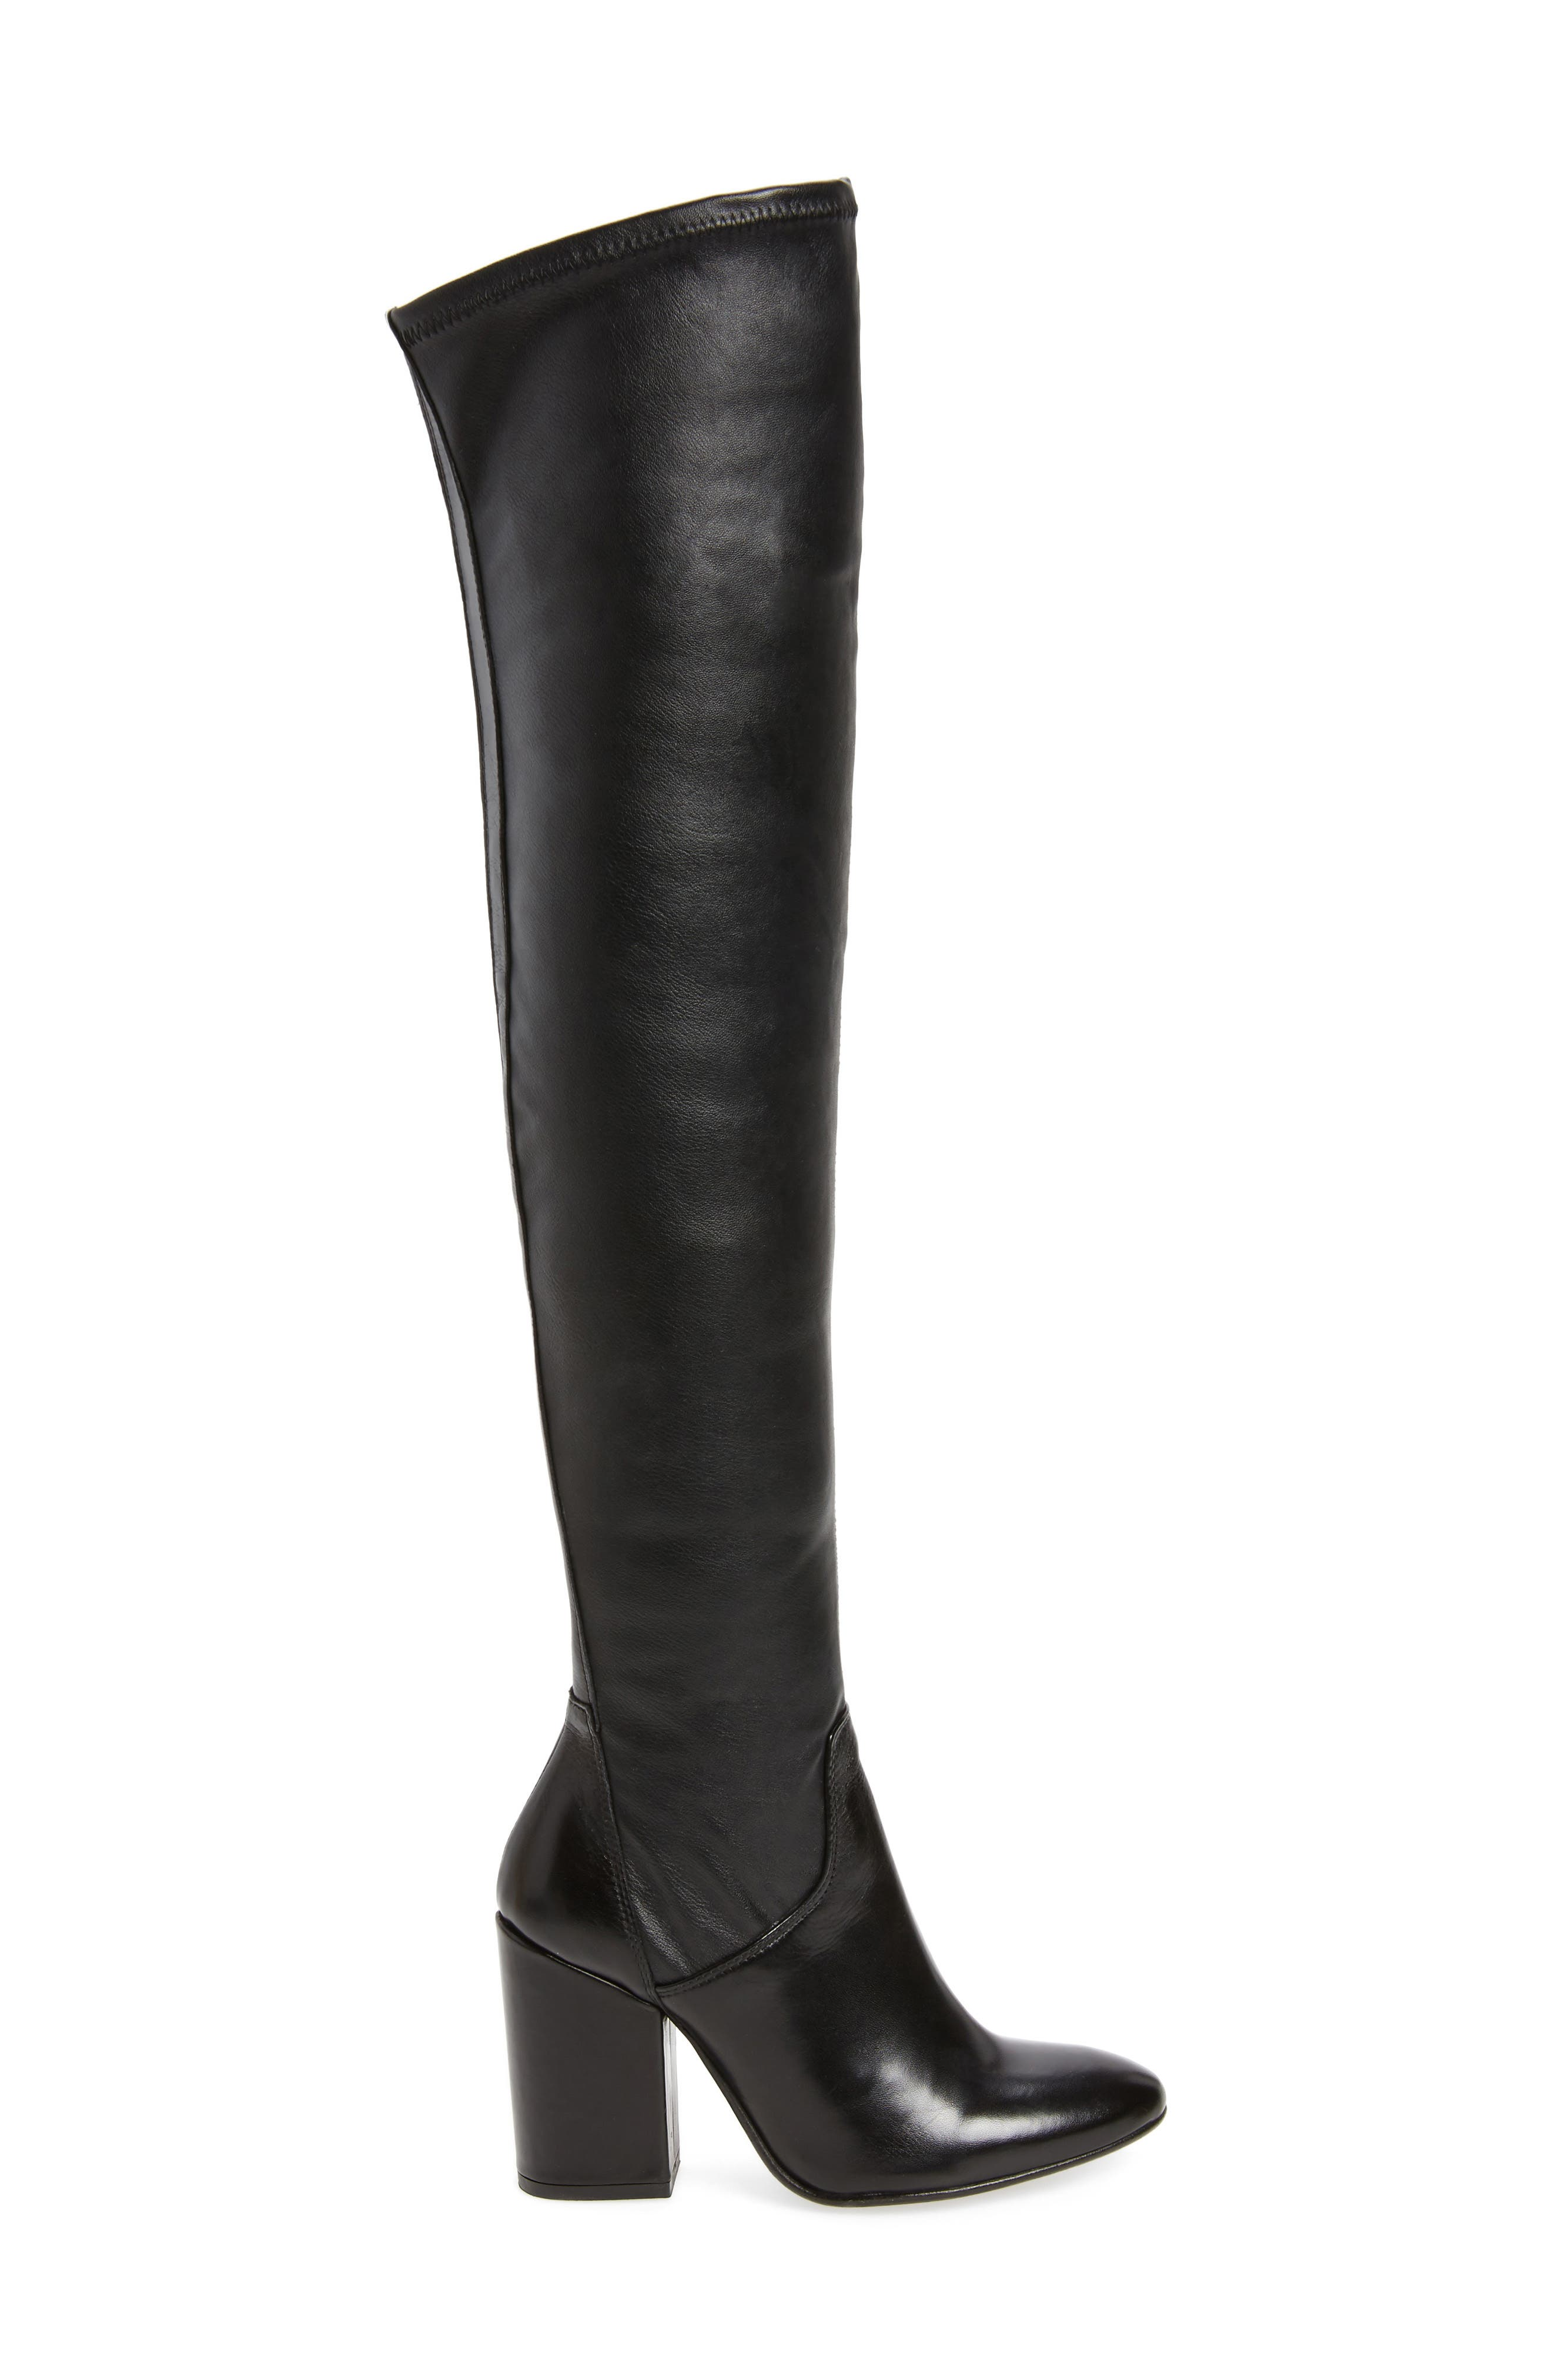 Clarice Over the Knee Boot,                             Alternate thumbnail 3, color,                             Black Leather